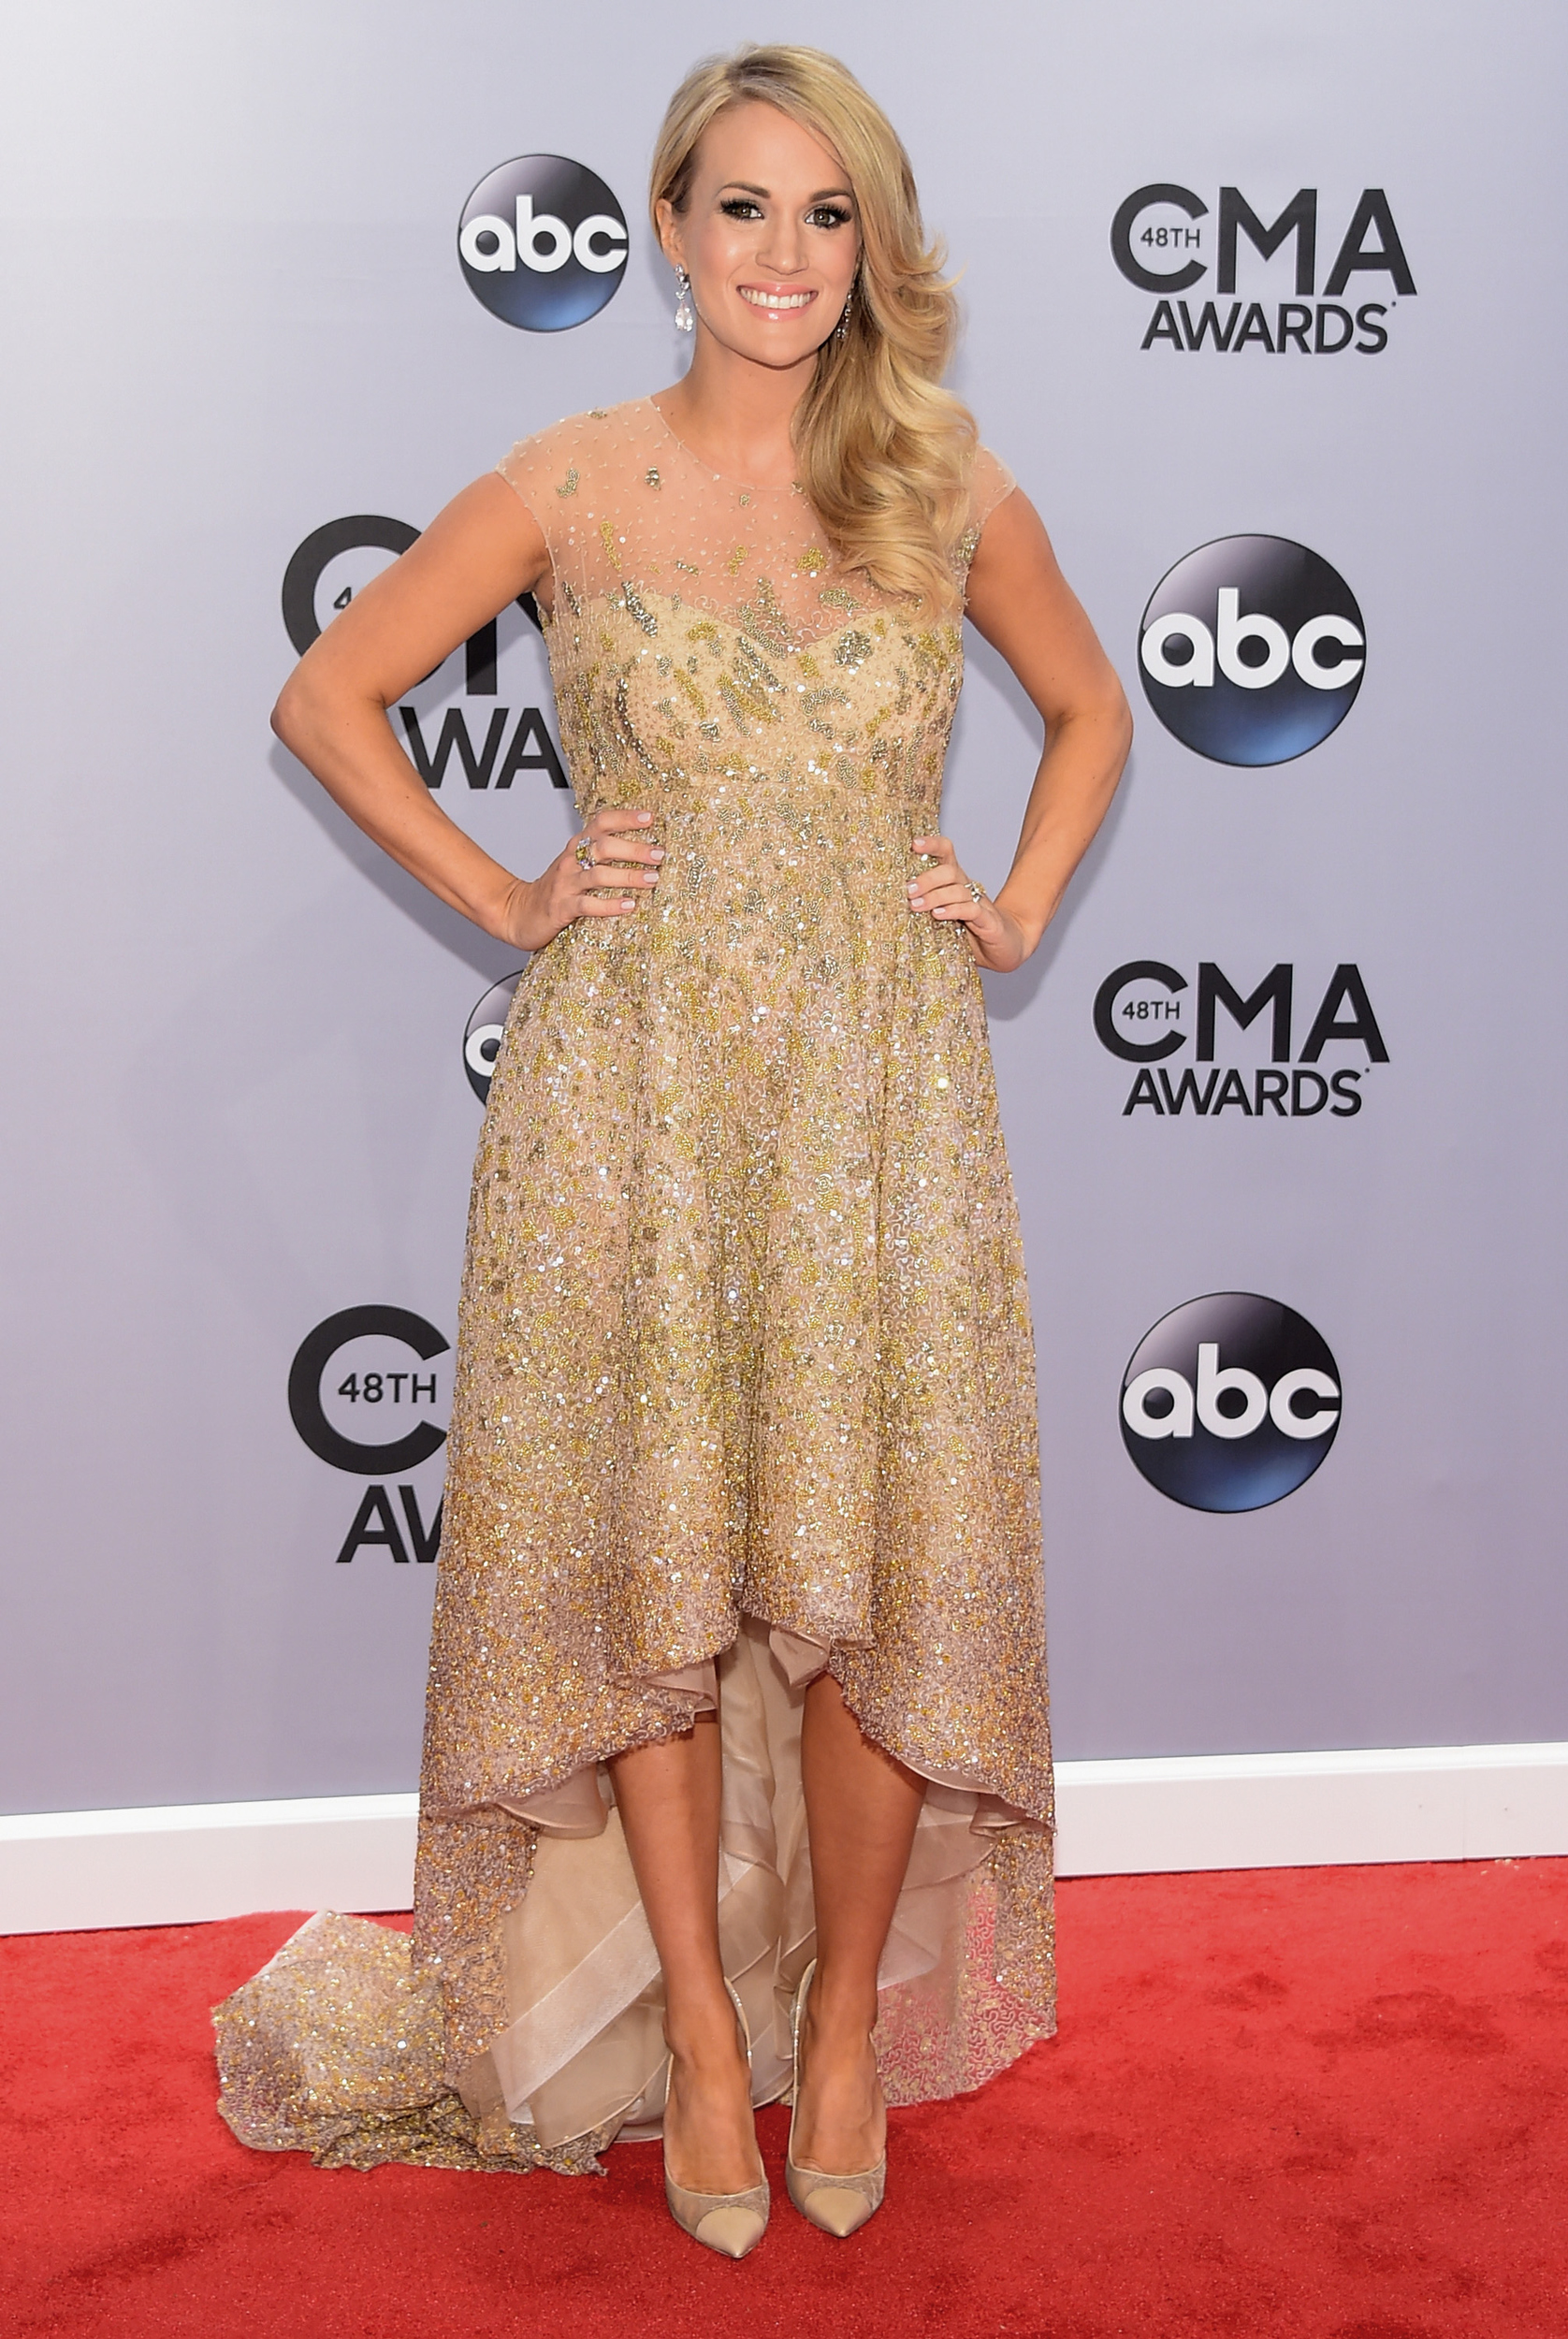 Cma awards 2014 best and worst dressed